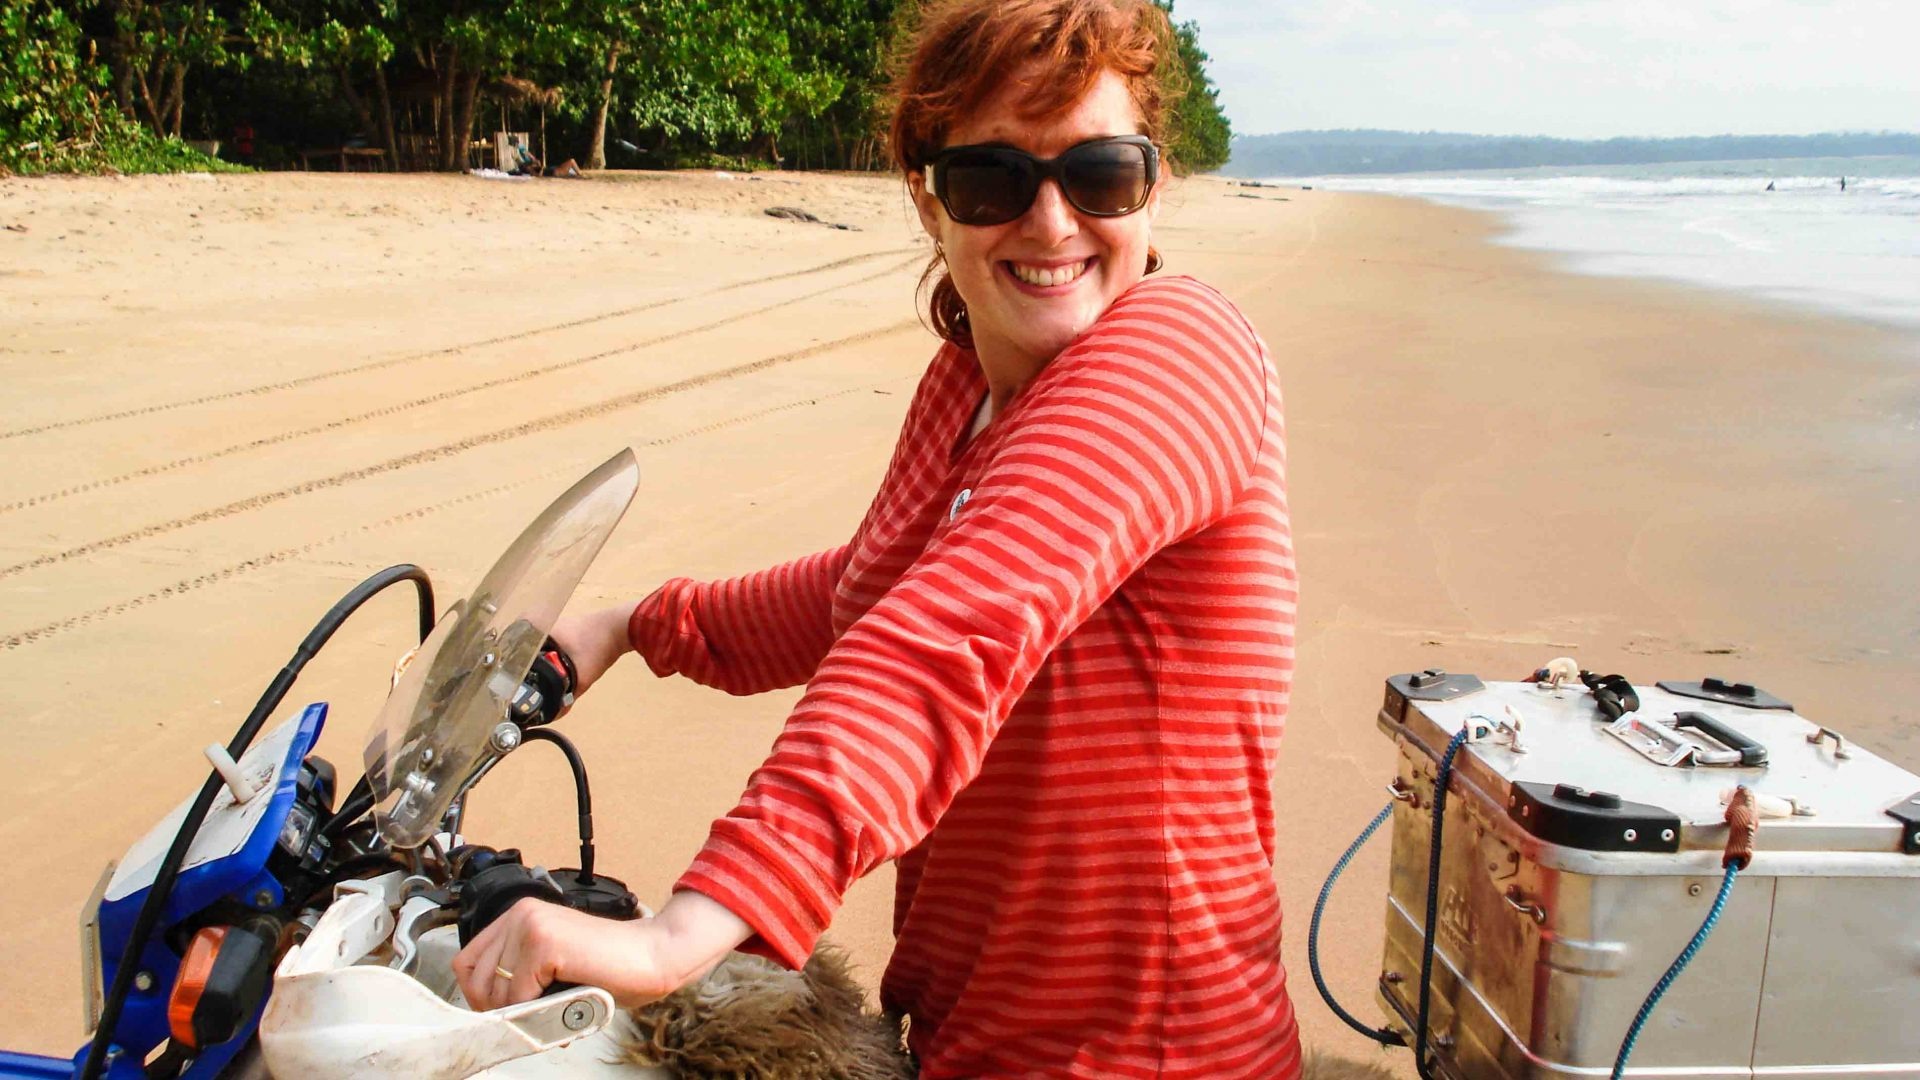 Lois poses for a photo on her bike at a beach in Cameroon.